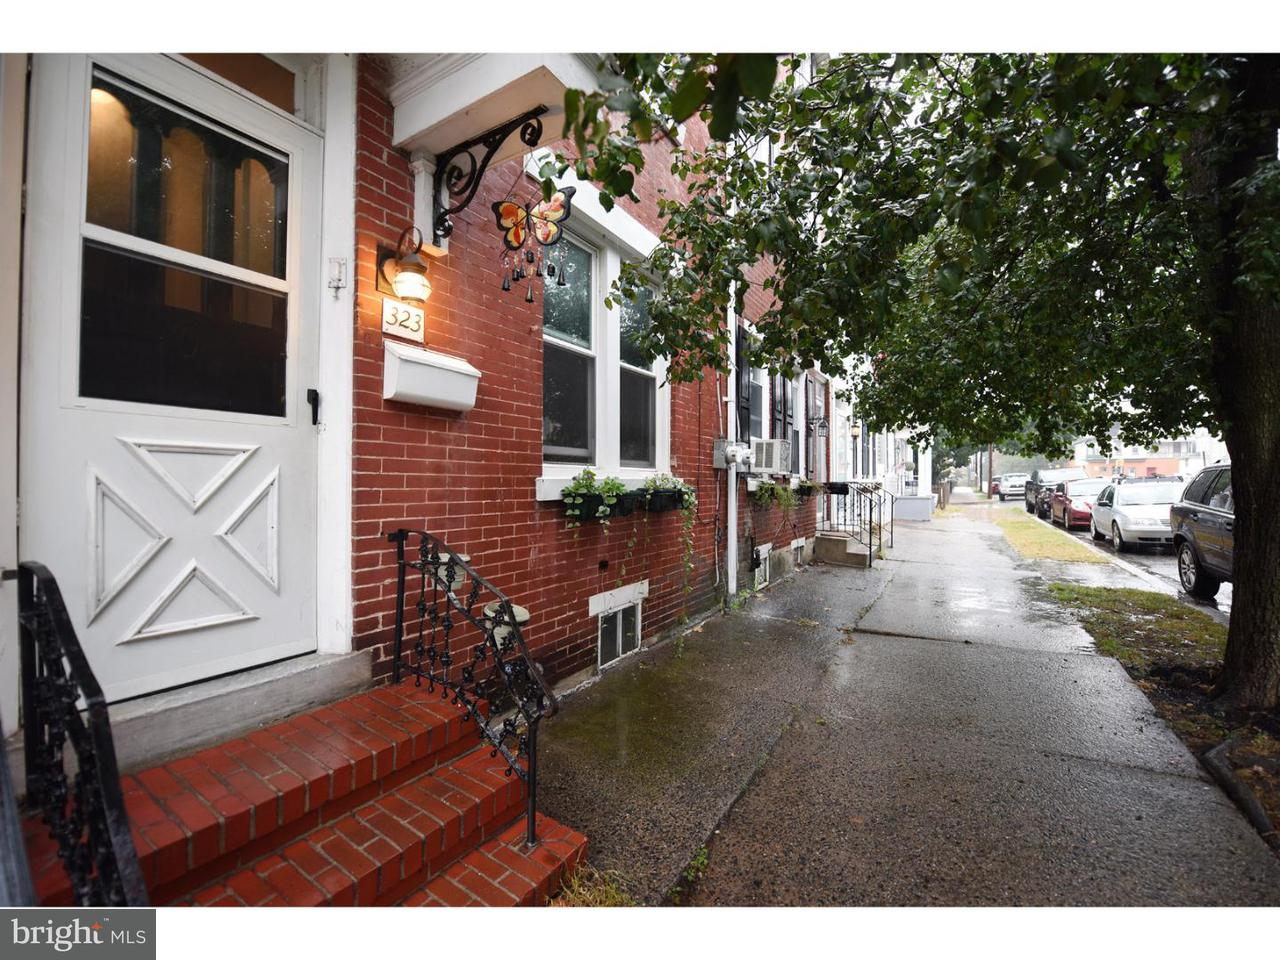 Townhouse for Sale at 323 WASHINGTON Avenue Phoenixville, Pennsylvania 19460 United States